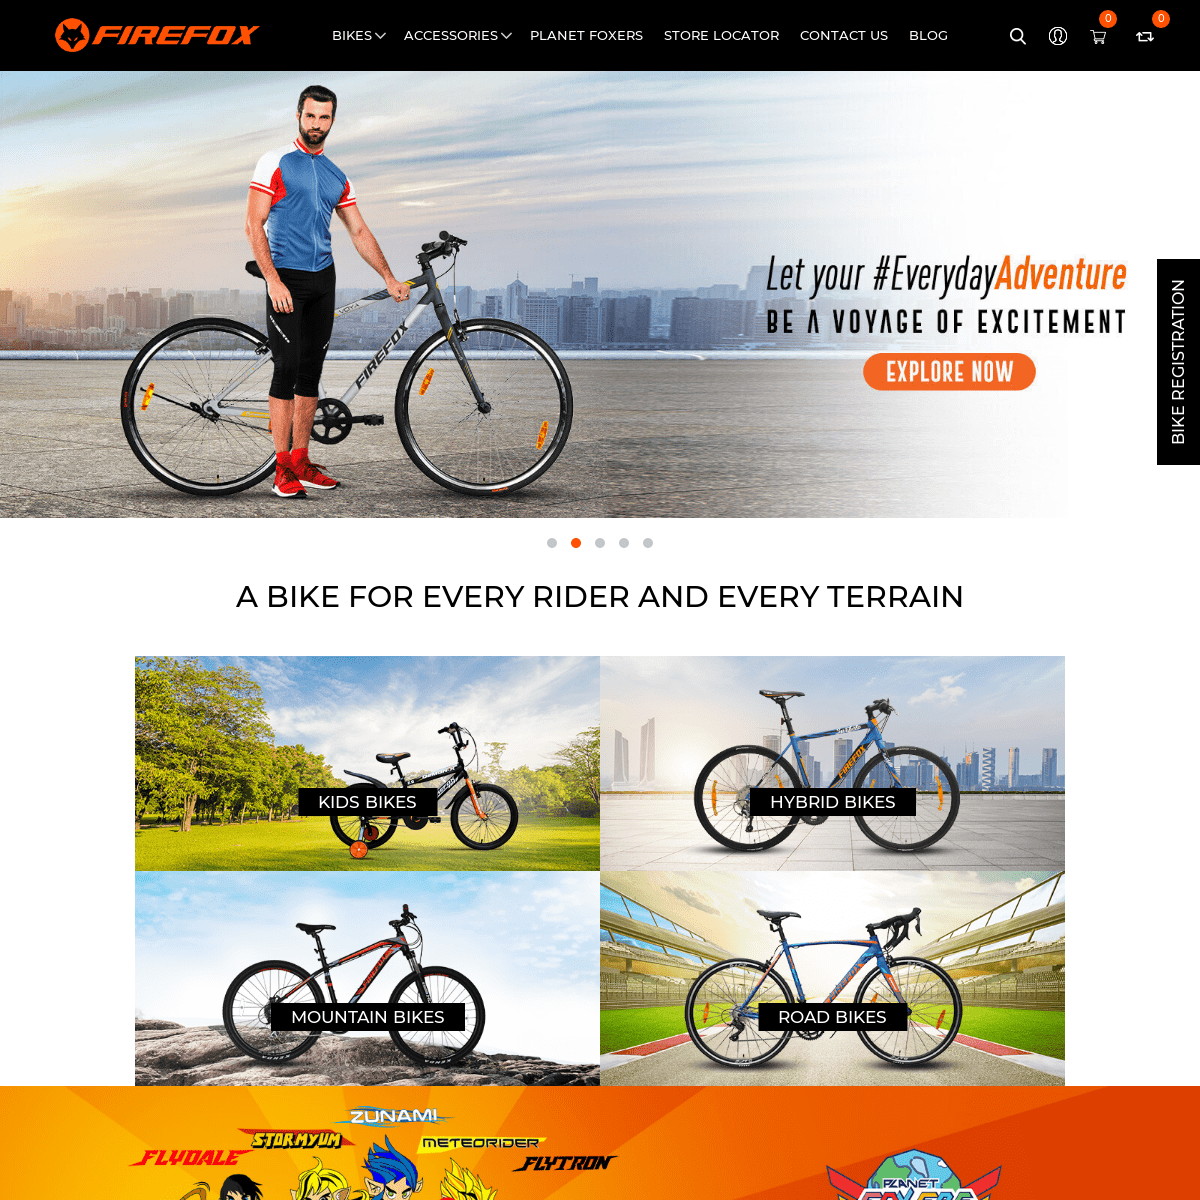 ArchiveBay.com - firefoxbikes.com - Firefox Cycles - Buy Premium Range of Bicycles Online in India